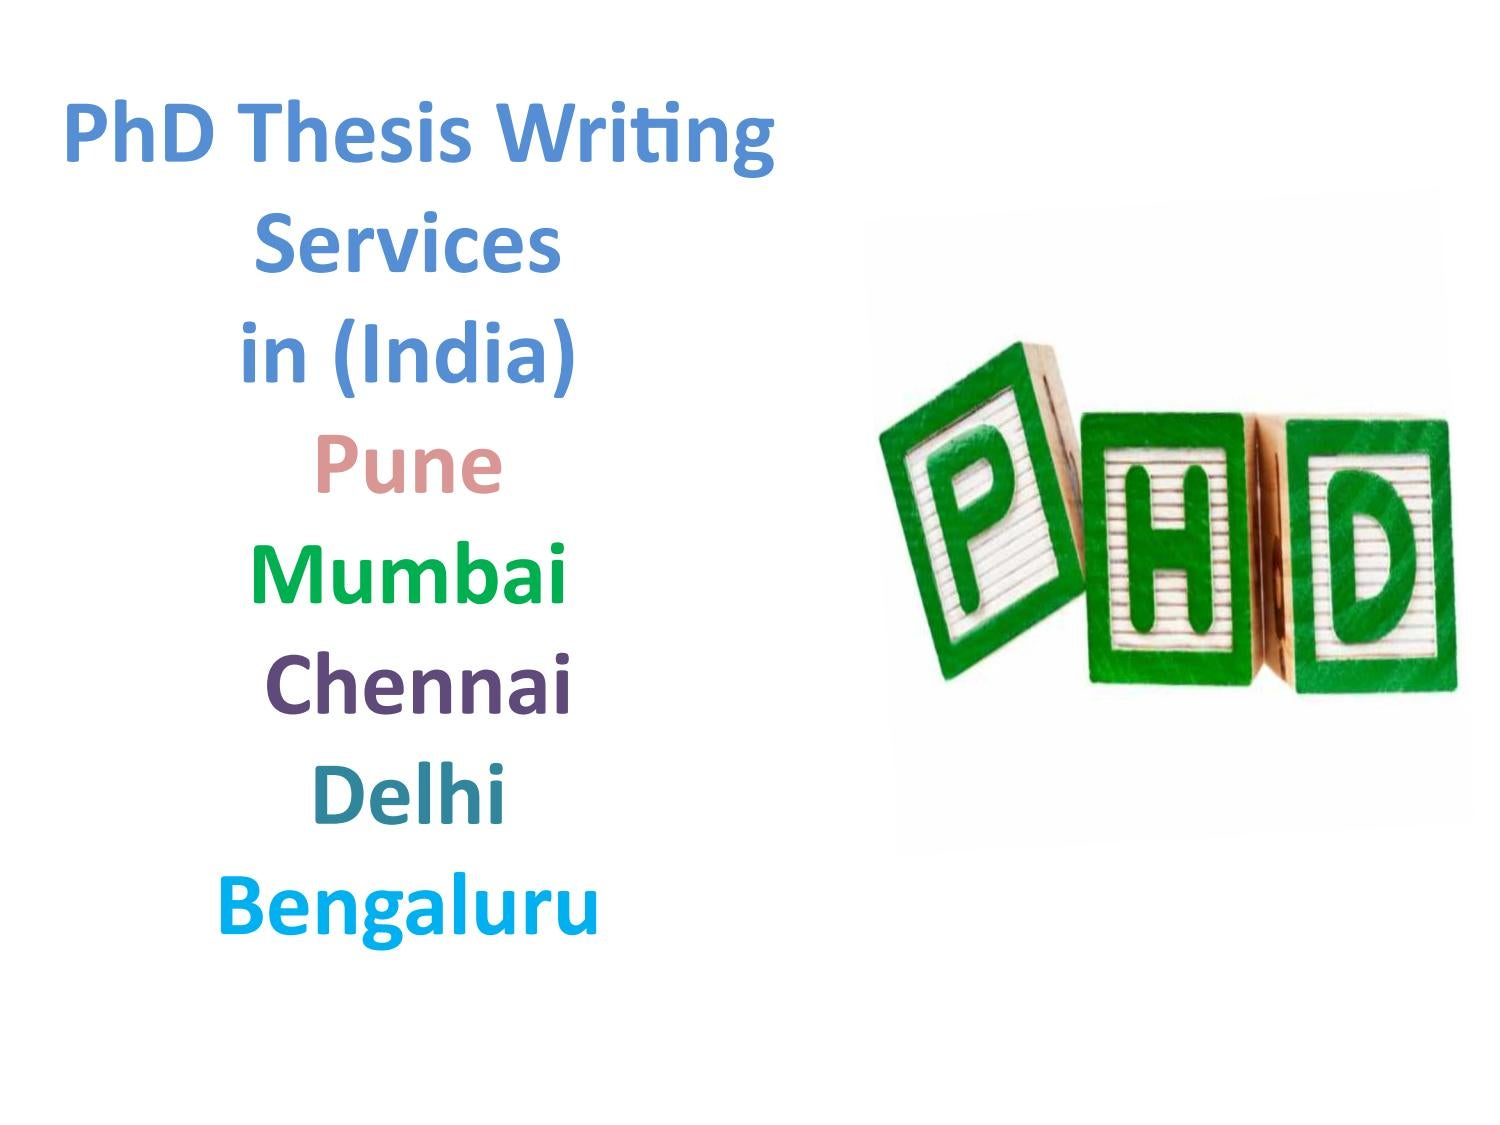 Us writing services phd thesis